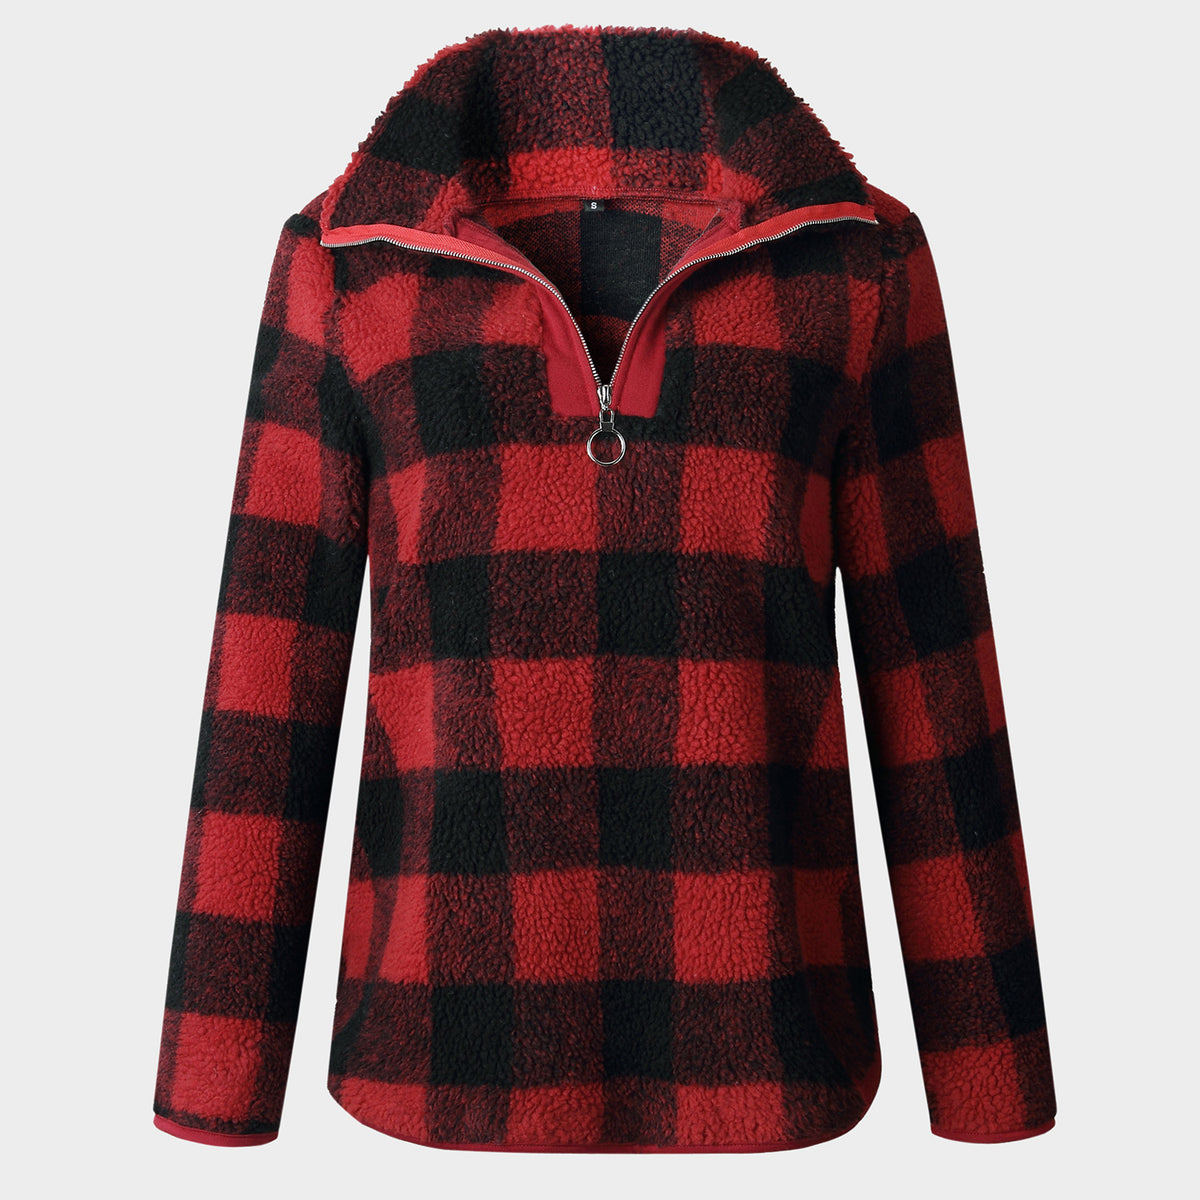 Checked Zip Stand-Up Fleece Sweater - worthtryit.com